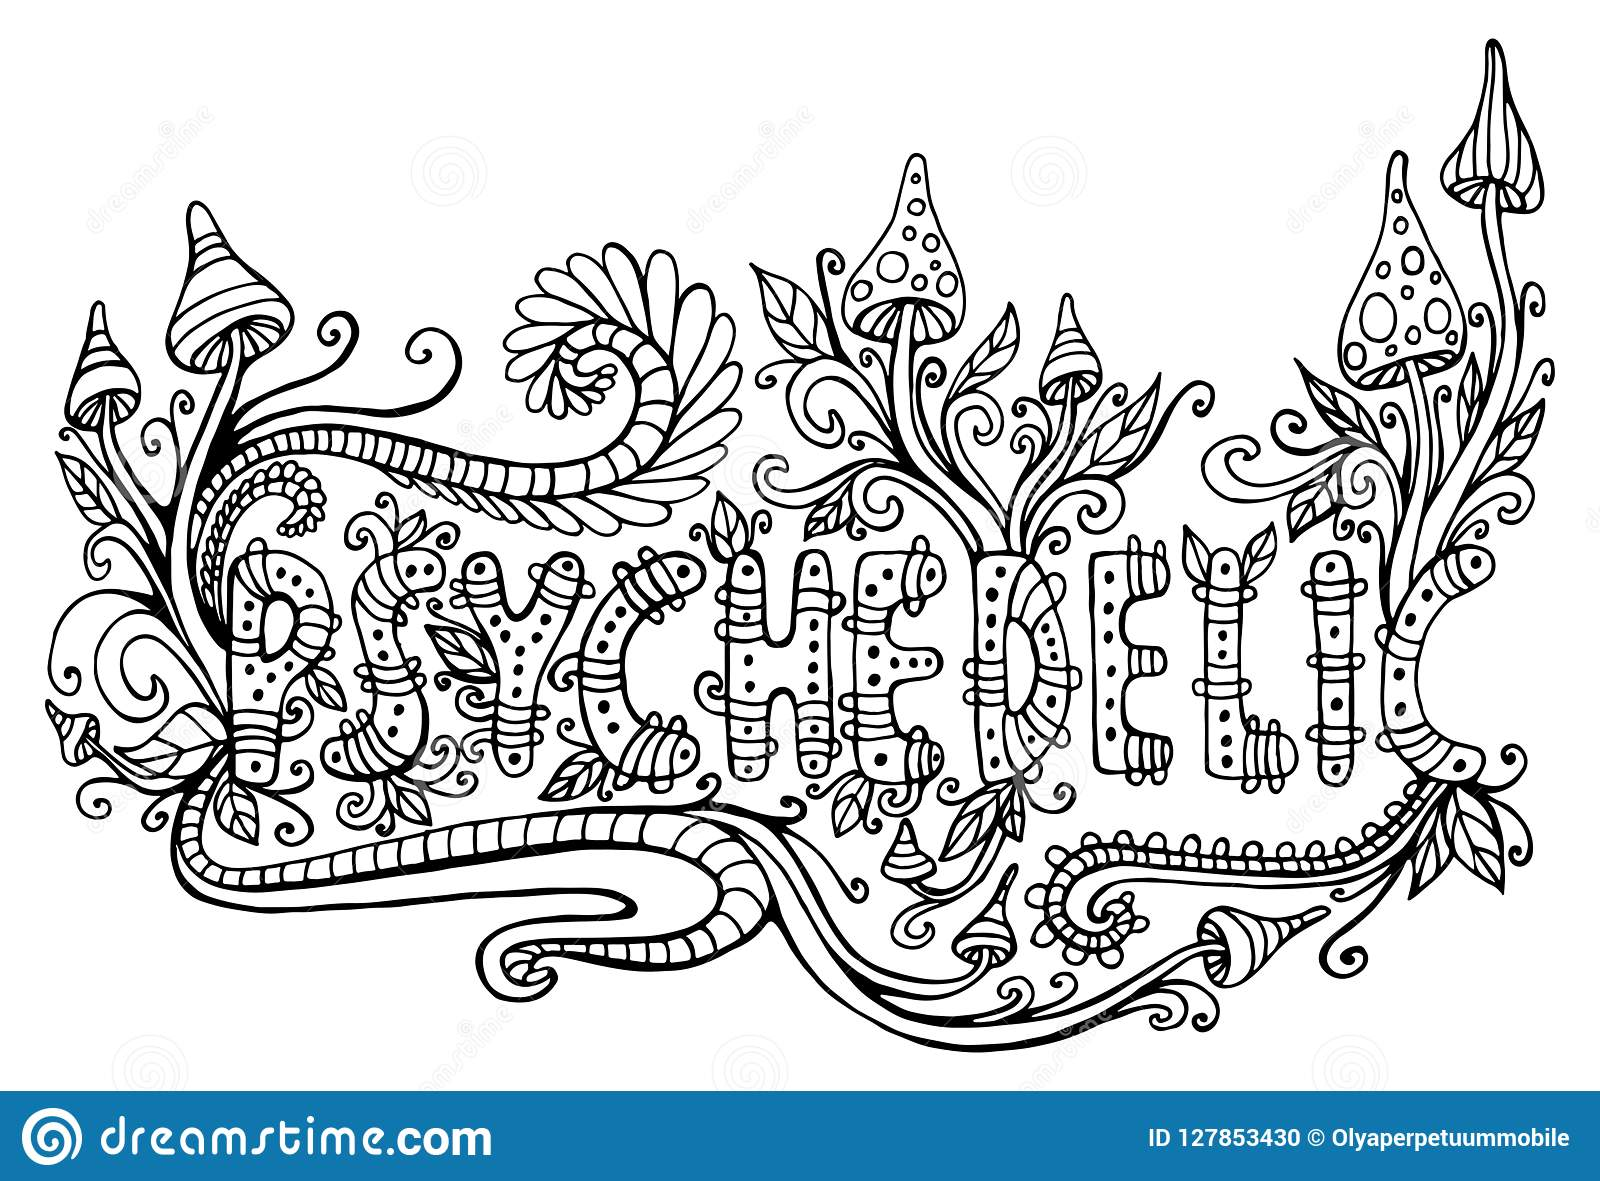 trippy coloring pages free printable Coloring4free - Coloring4Free.com | 1181x1600